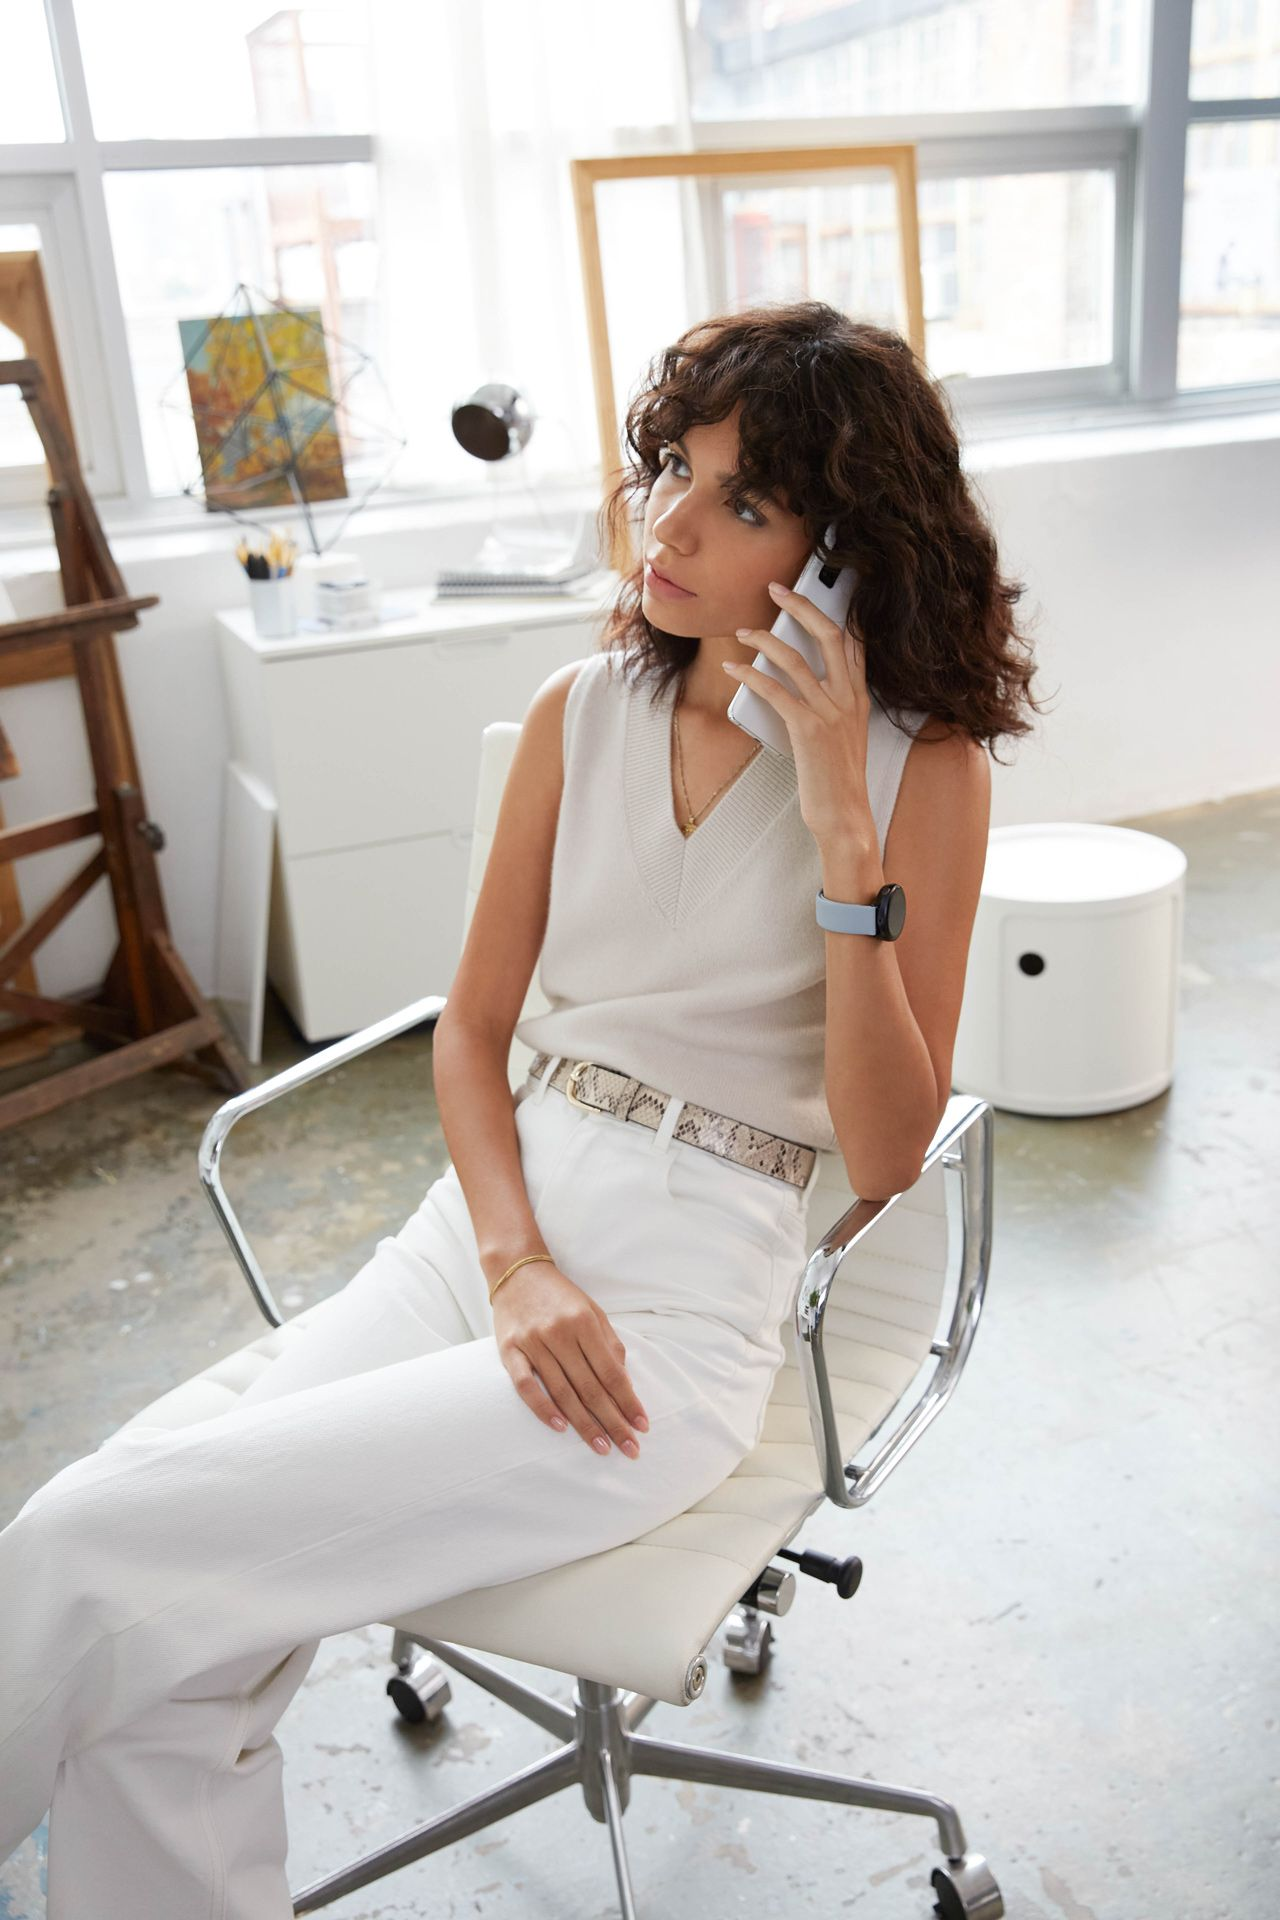 curly haired female model wearing white pants and white blouse sitting on white office chair talking on a white smartphone photographed by Oumayma B Tanfous for Samsung phone campaign